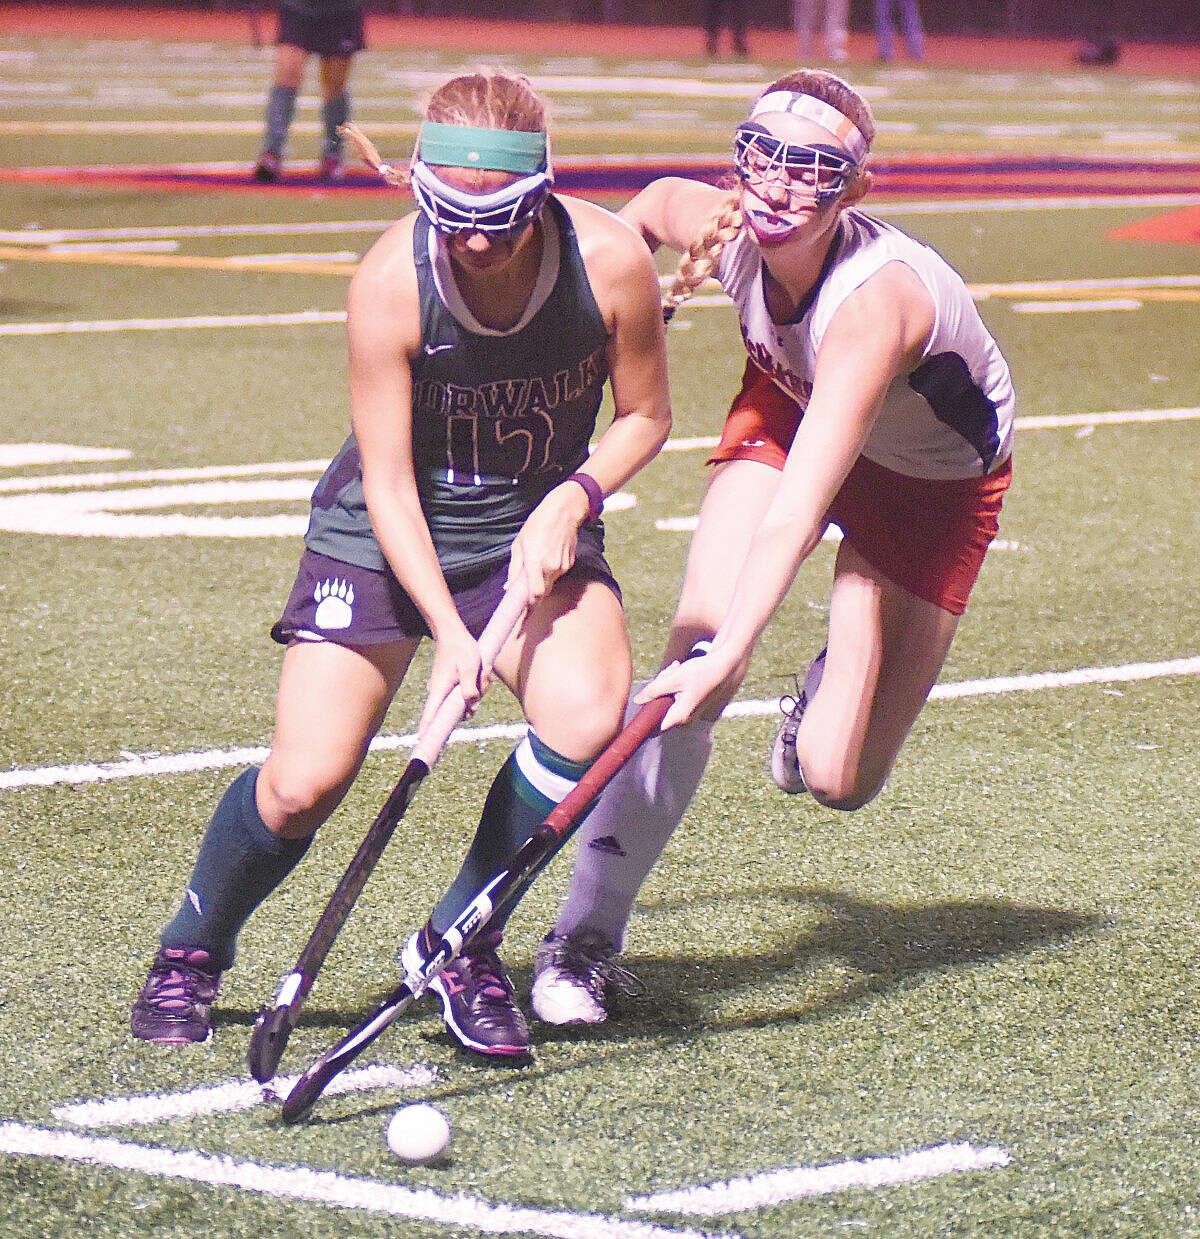 Hour photo/John Nash - Norwalk's Lauren Capone keeps possession of the ball as she deals with the defense of Brien McMahon's Stephanie Mangels during Wednesday's matchup at Casagrande Field in Norwalk. Norwalk won 8-0.